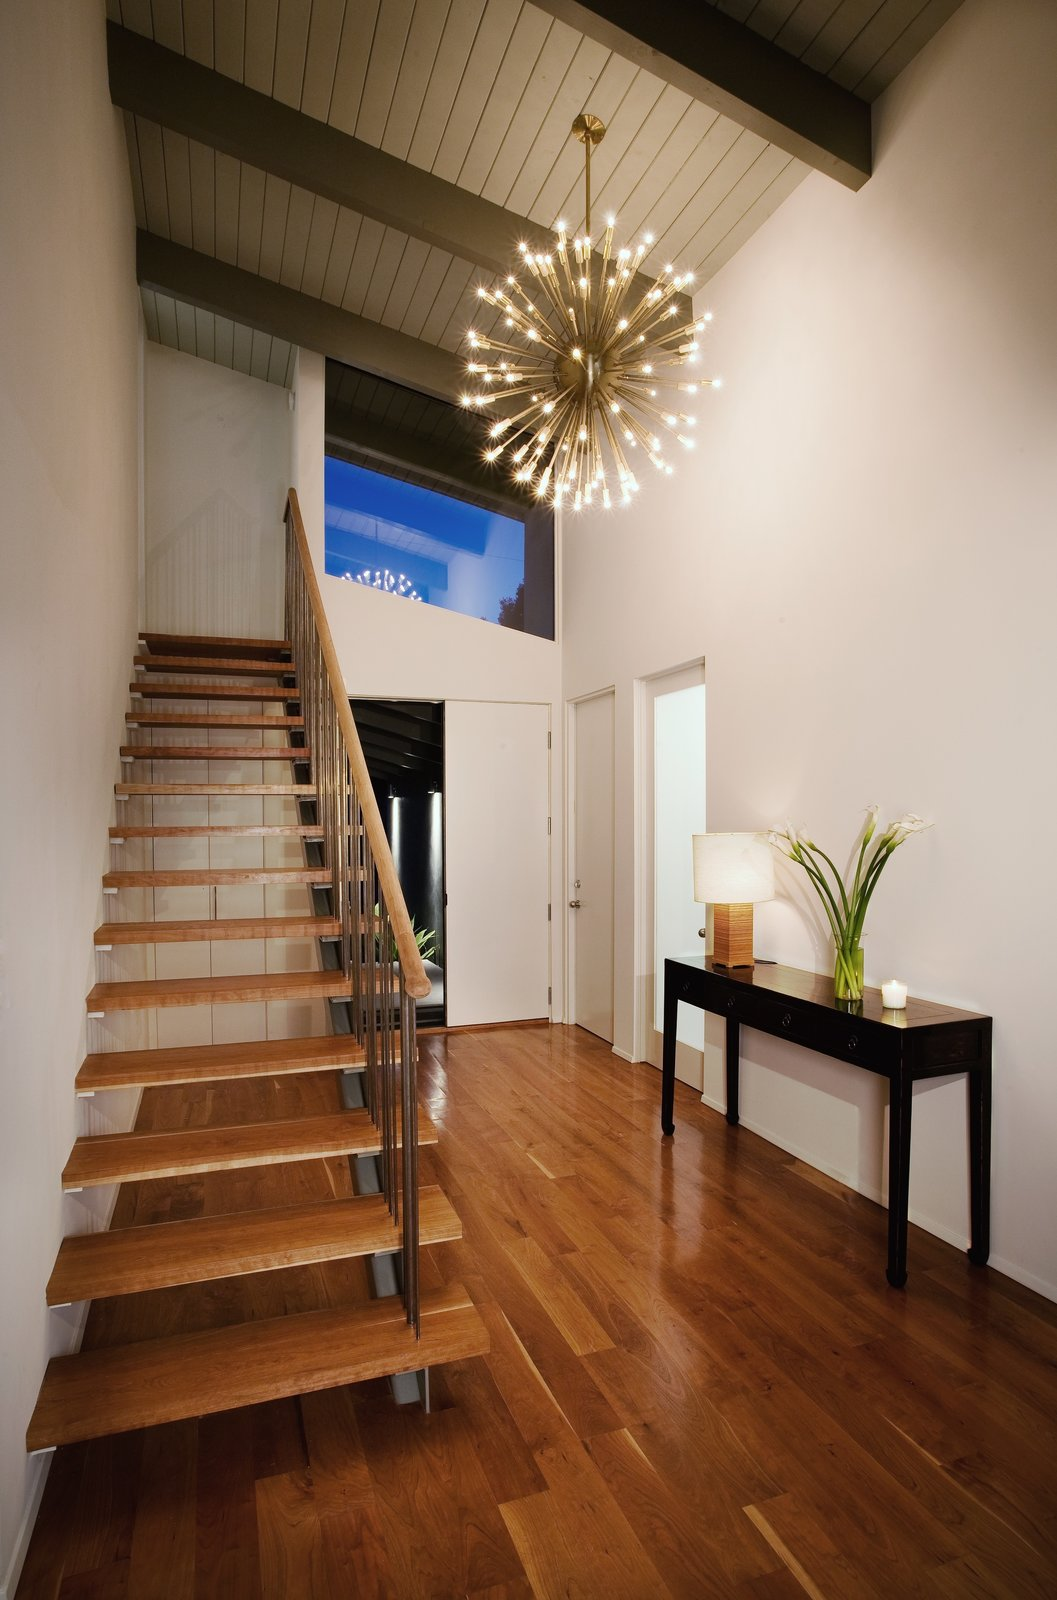 In the entryway, a brass Sputnik chandelier illuminates the airy American elm staircase.  190+ Best Modern Staircase Ideas by Dwell from A Renovation Elevates This Humble Ranch Among its Iconic Midcentury Neighbors